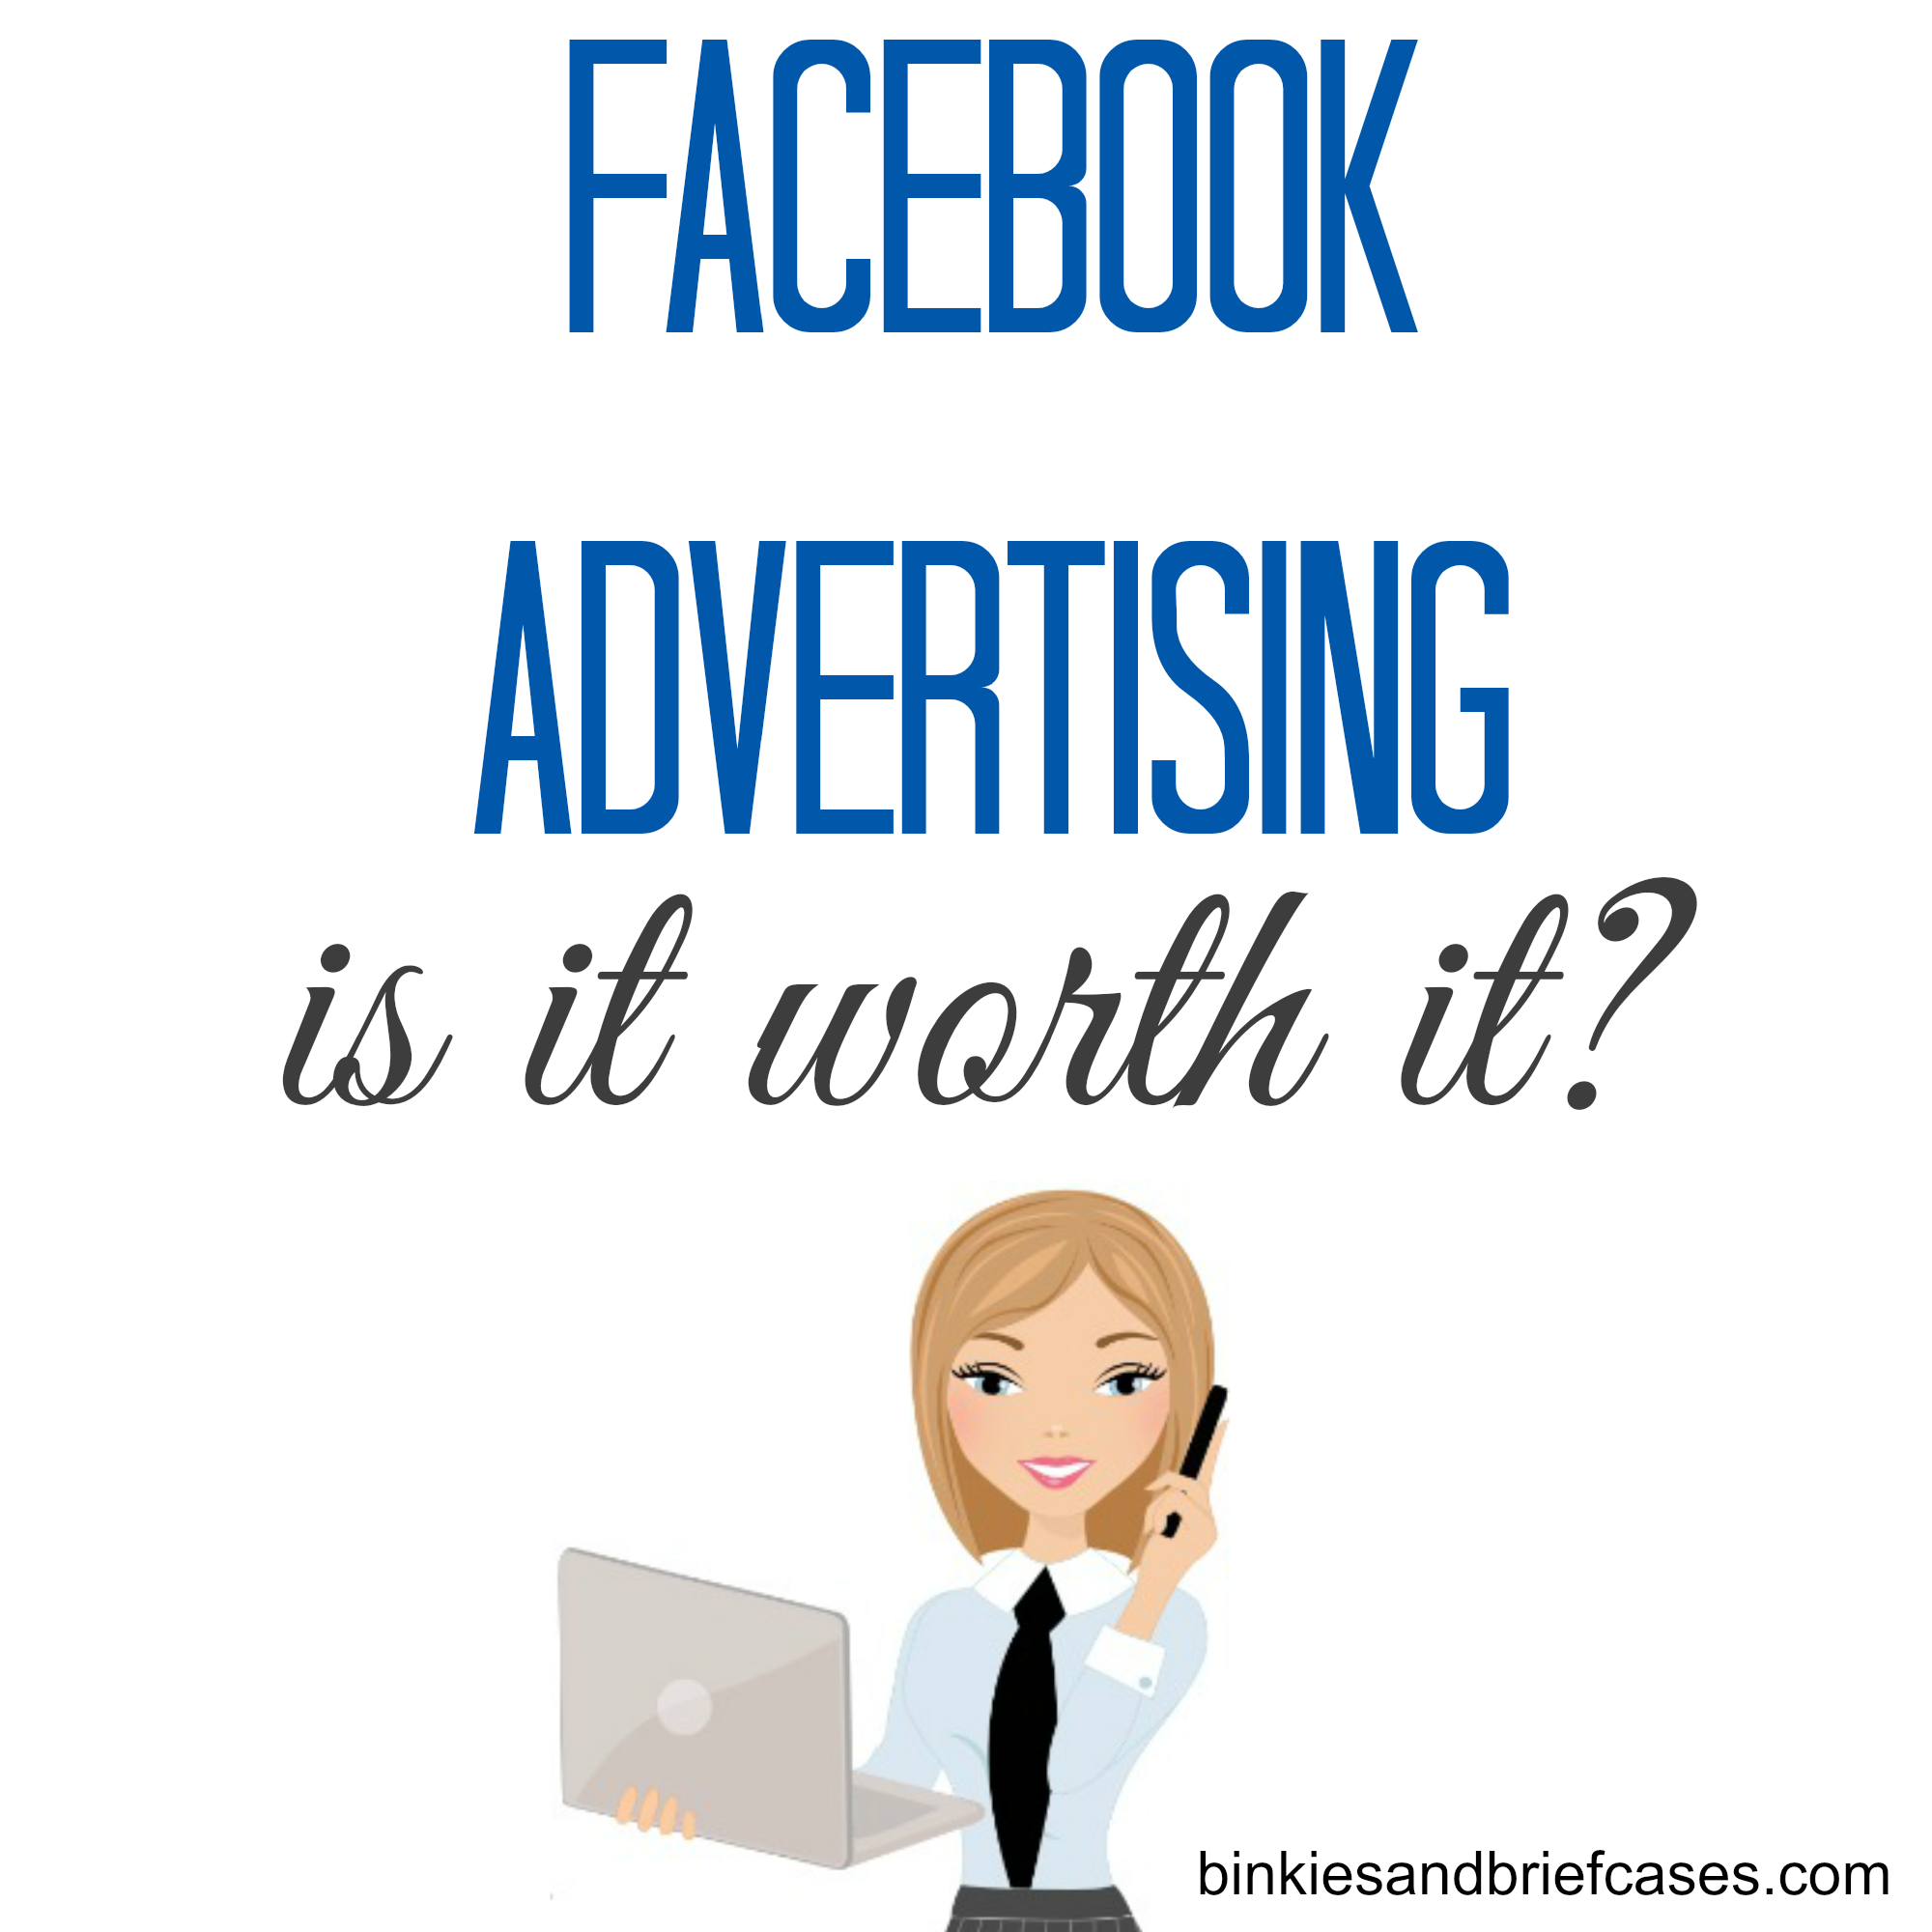 Facebook Advertising: Is It Worth It? • Binkies and Briefcases